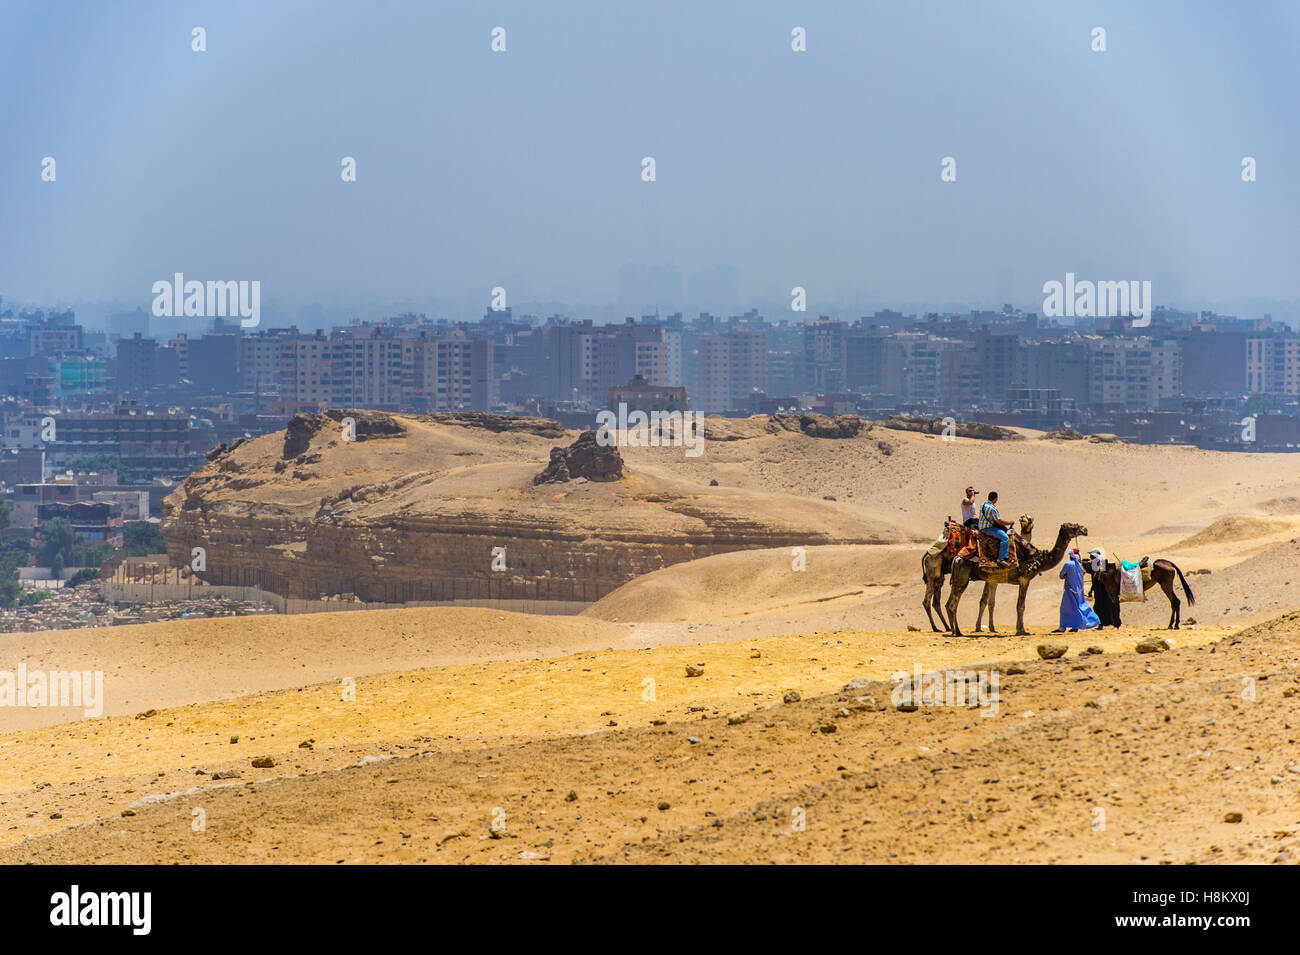 Cairo, Egypt Camel drivers and tourists riding camels and horses through the desert with the city of Cairo in the - Stock Image